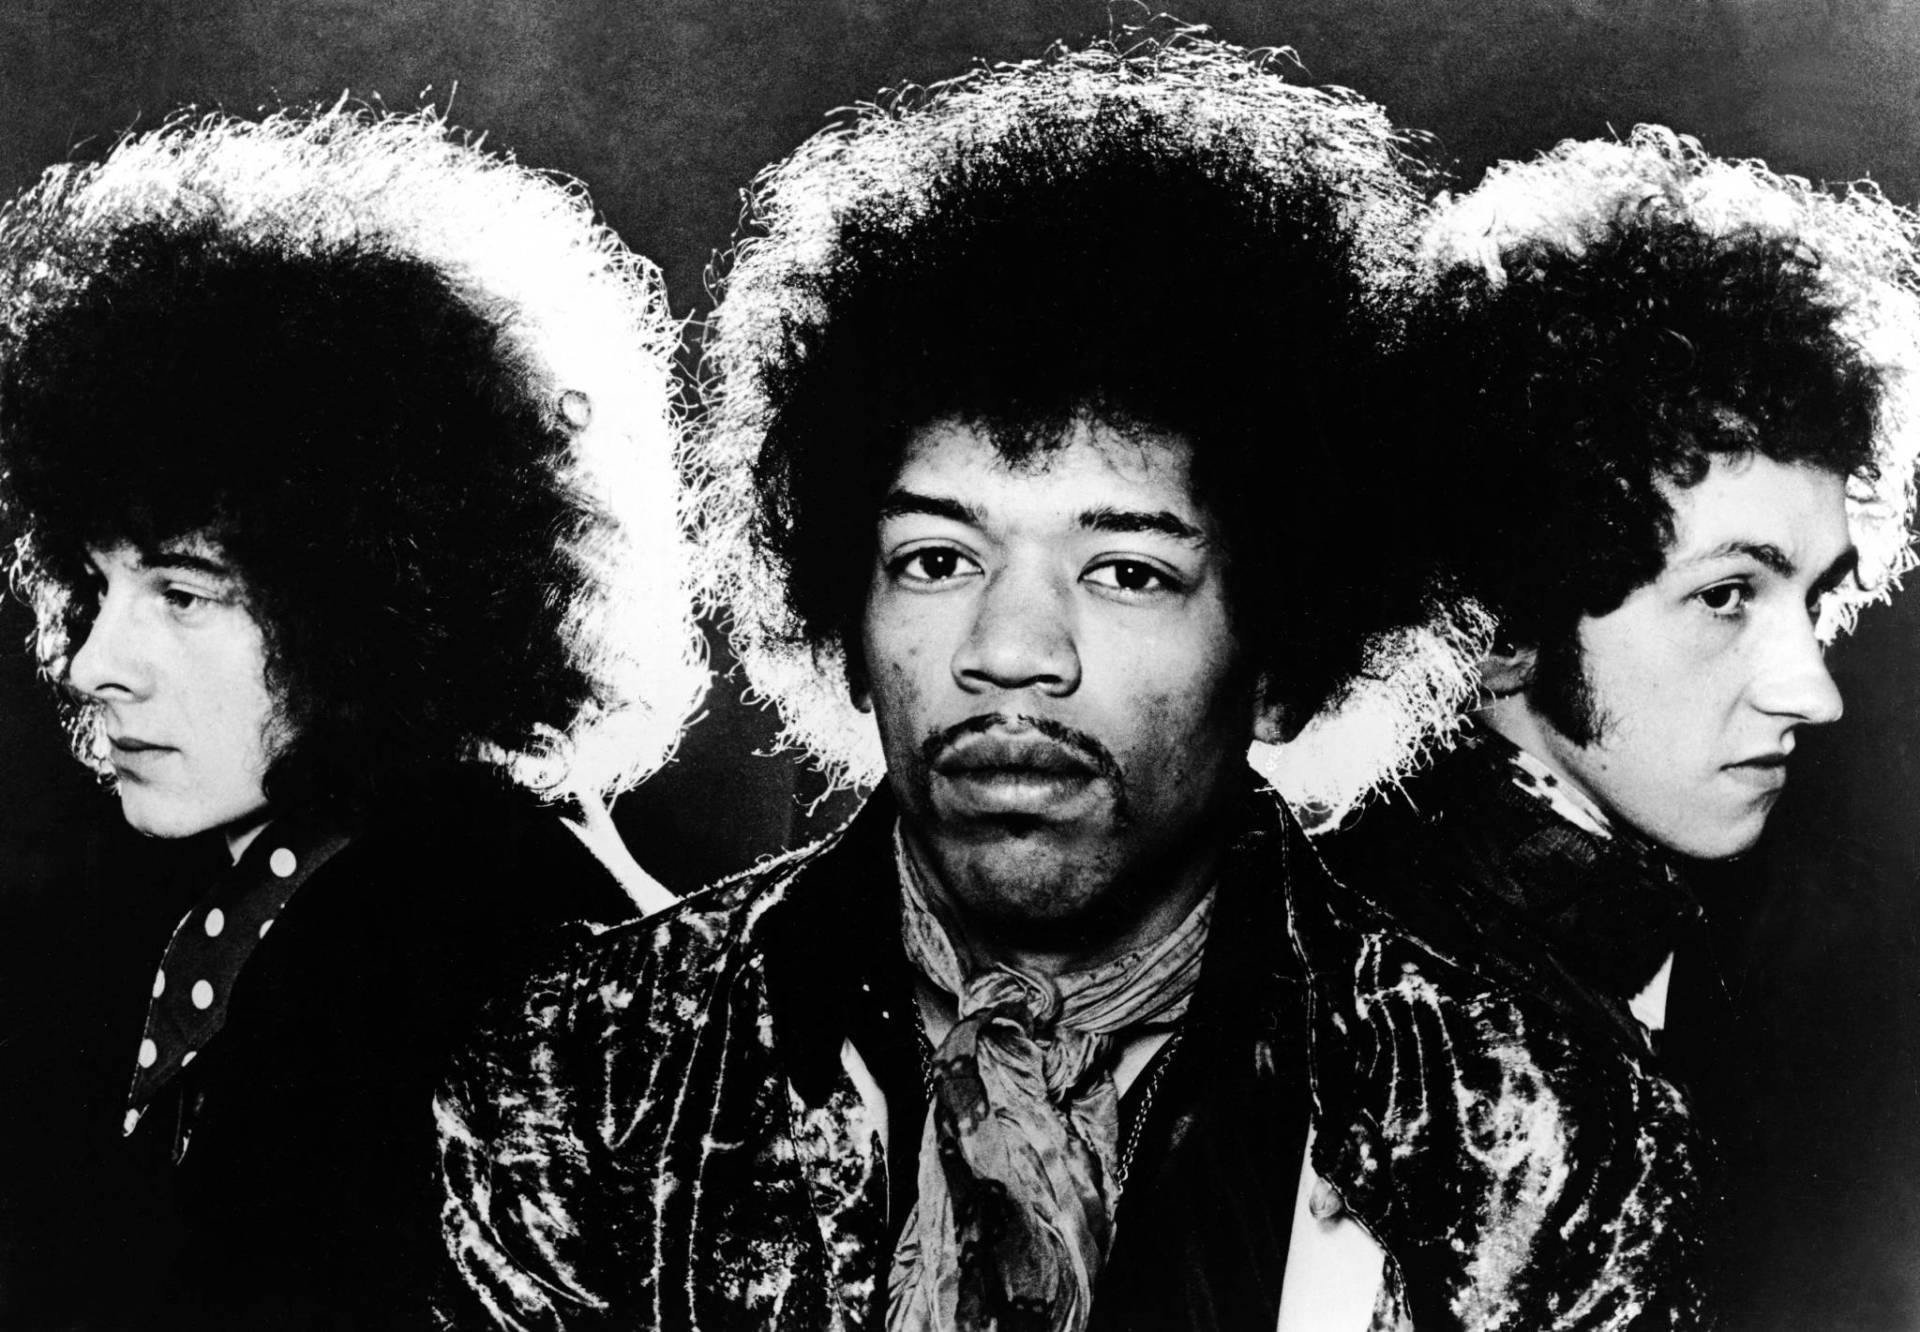 The Jimi Hendrix Experience in the late 1960s. Left to right: Noel Redding, Jimi Hendrix, Mitch Mitchell.  Hulton Archive/Getty Images